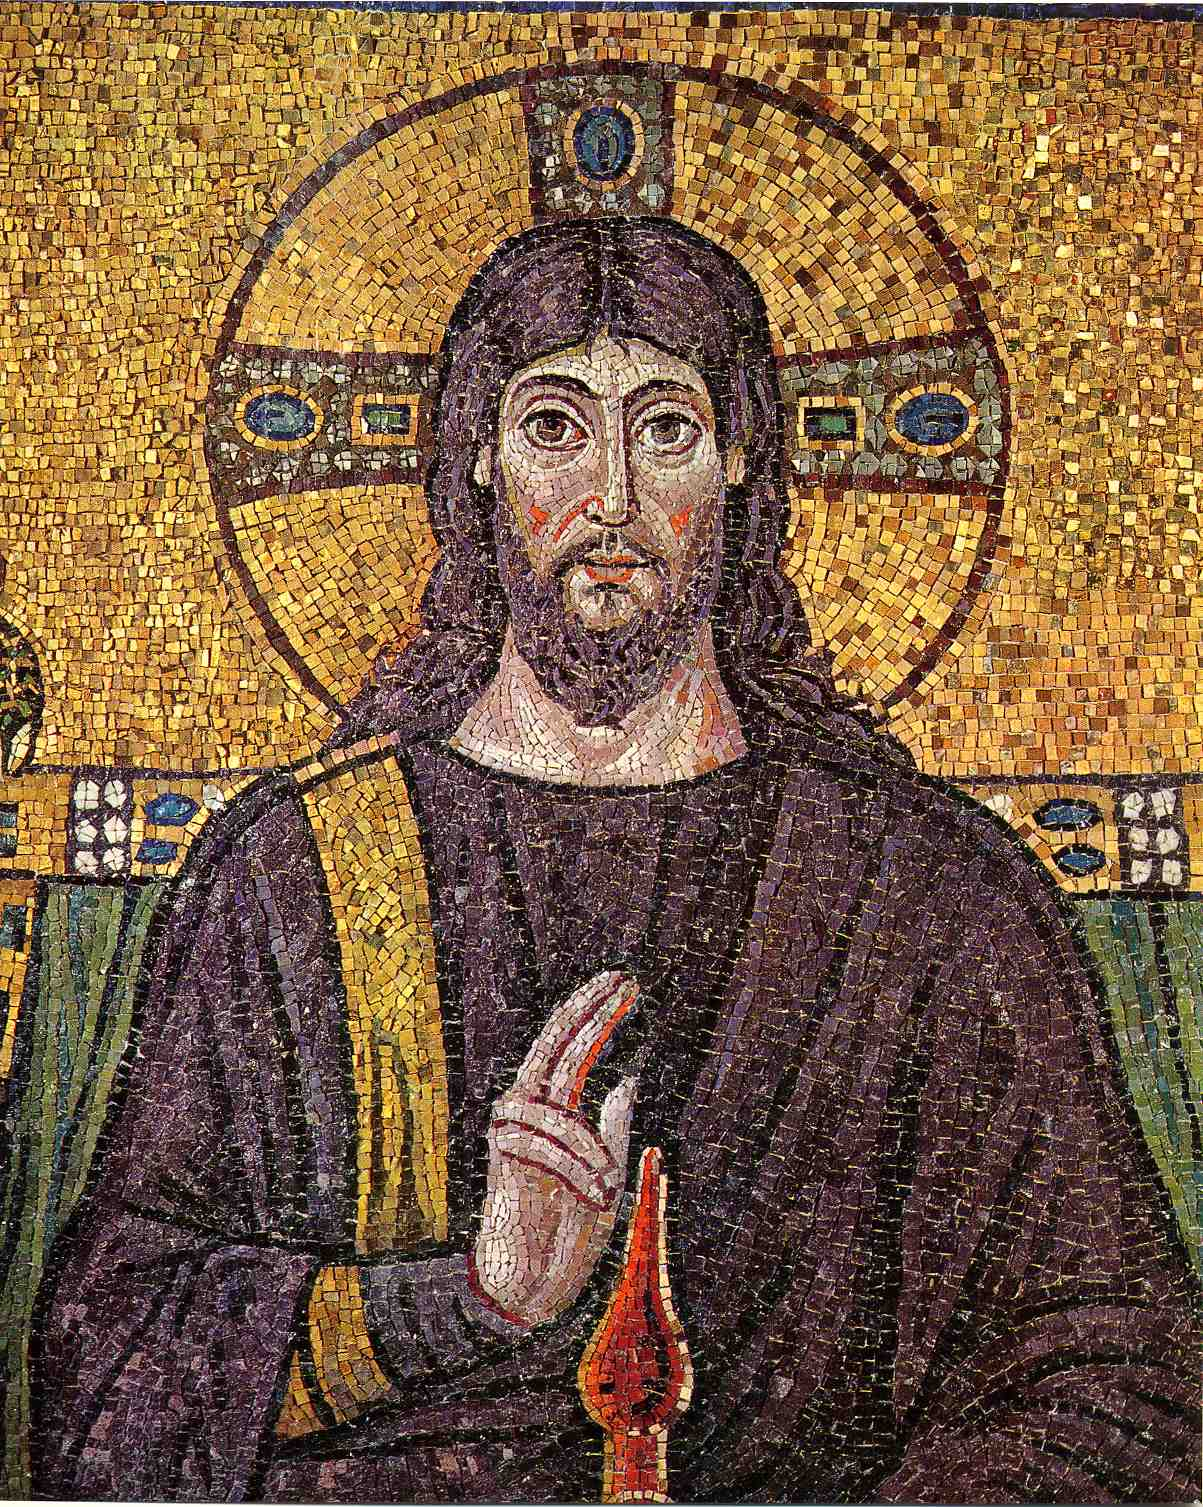 Mosaic Of Jesus At Basilica Of Sant  Apollinare Nuovo